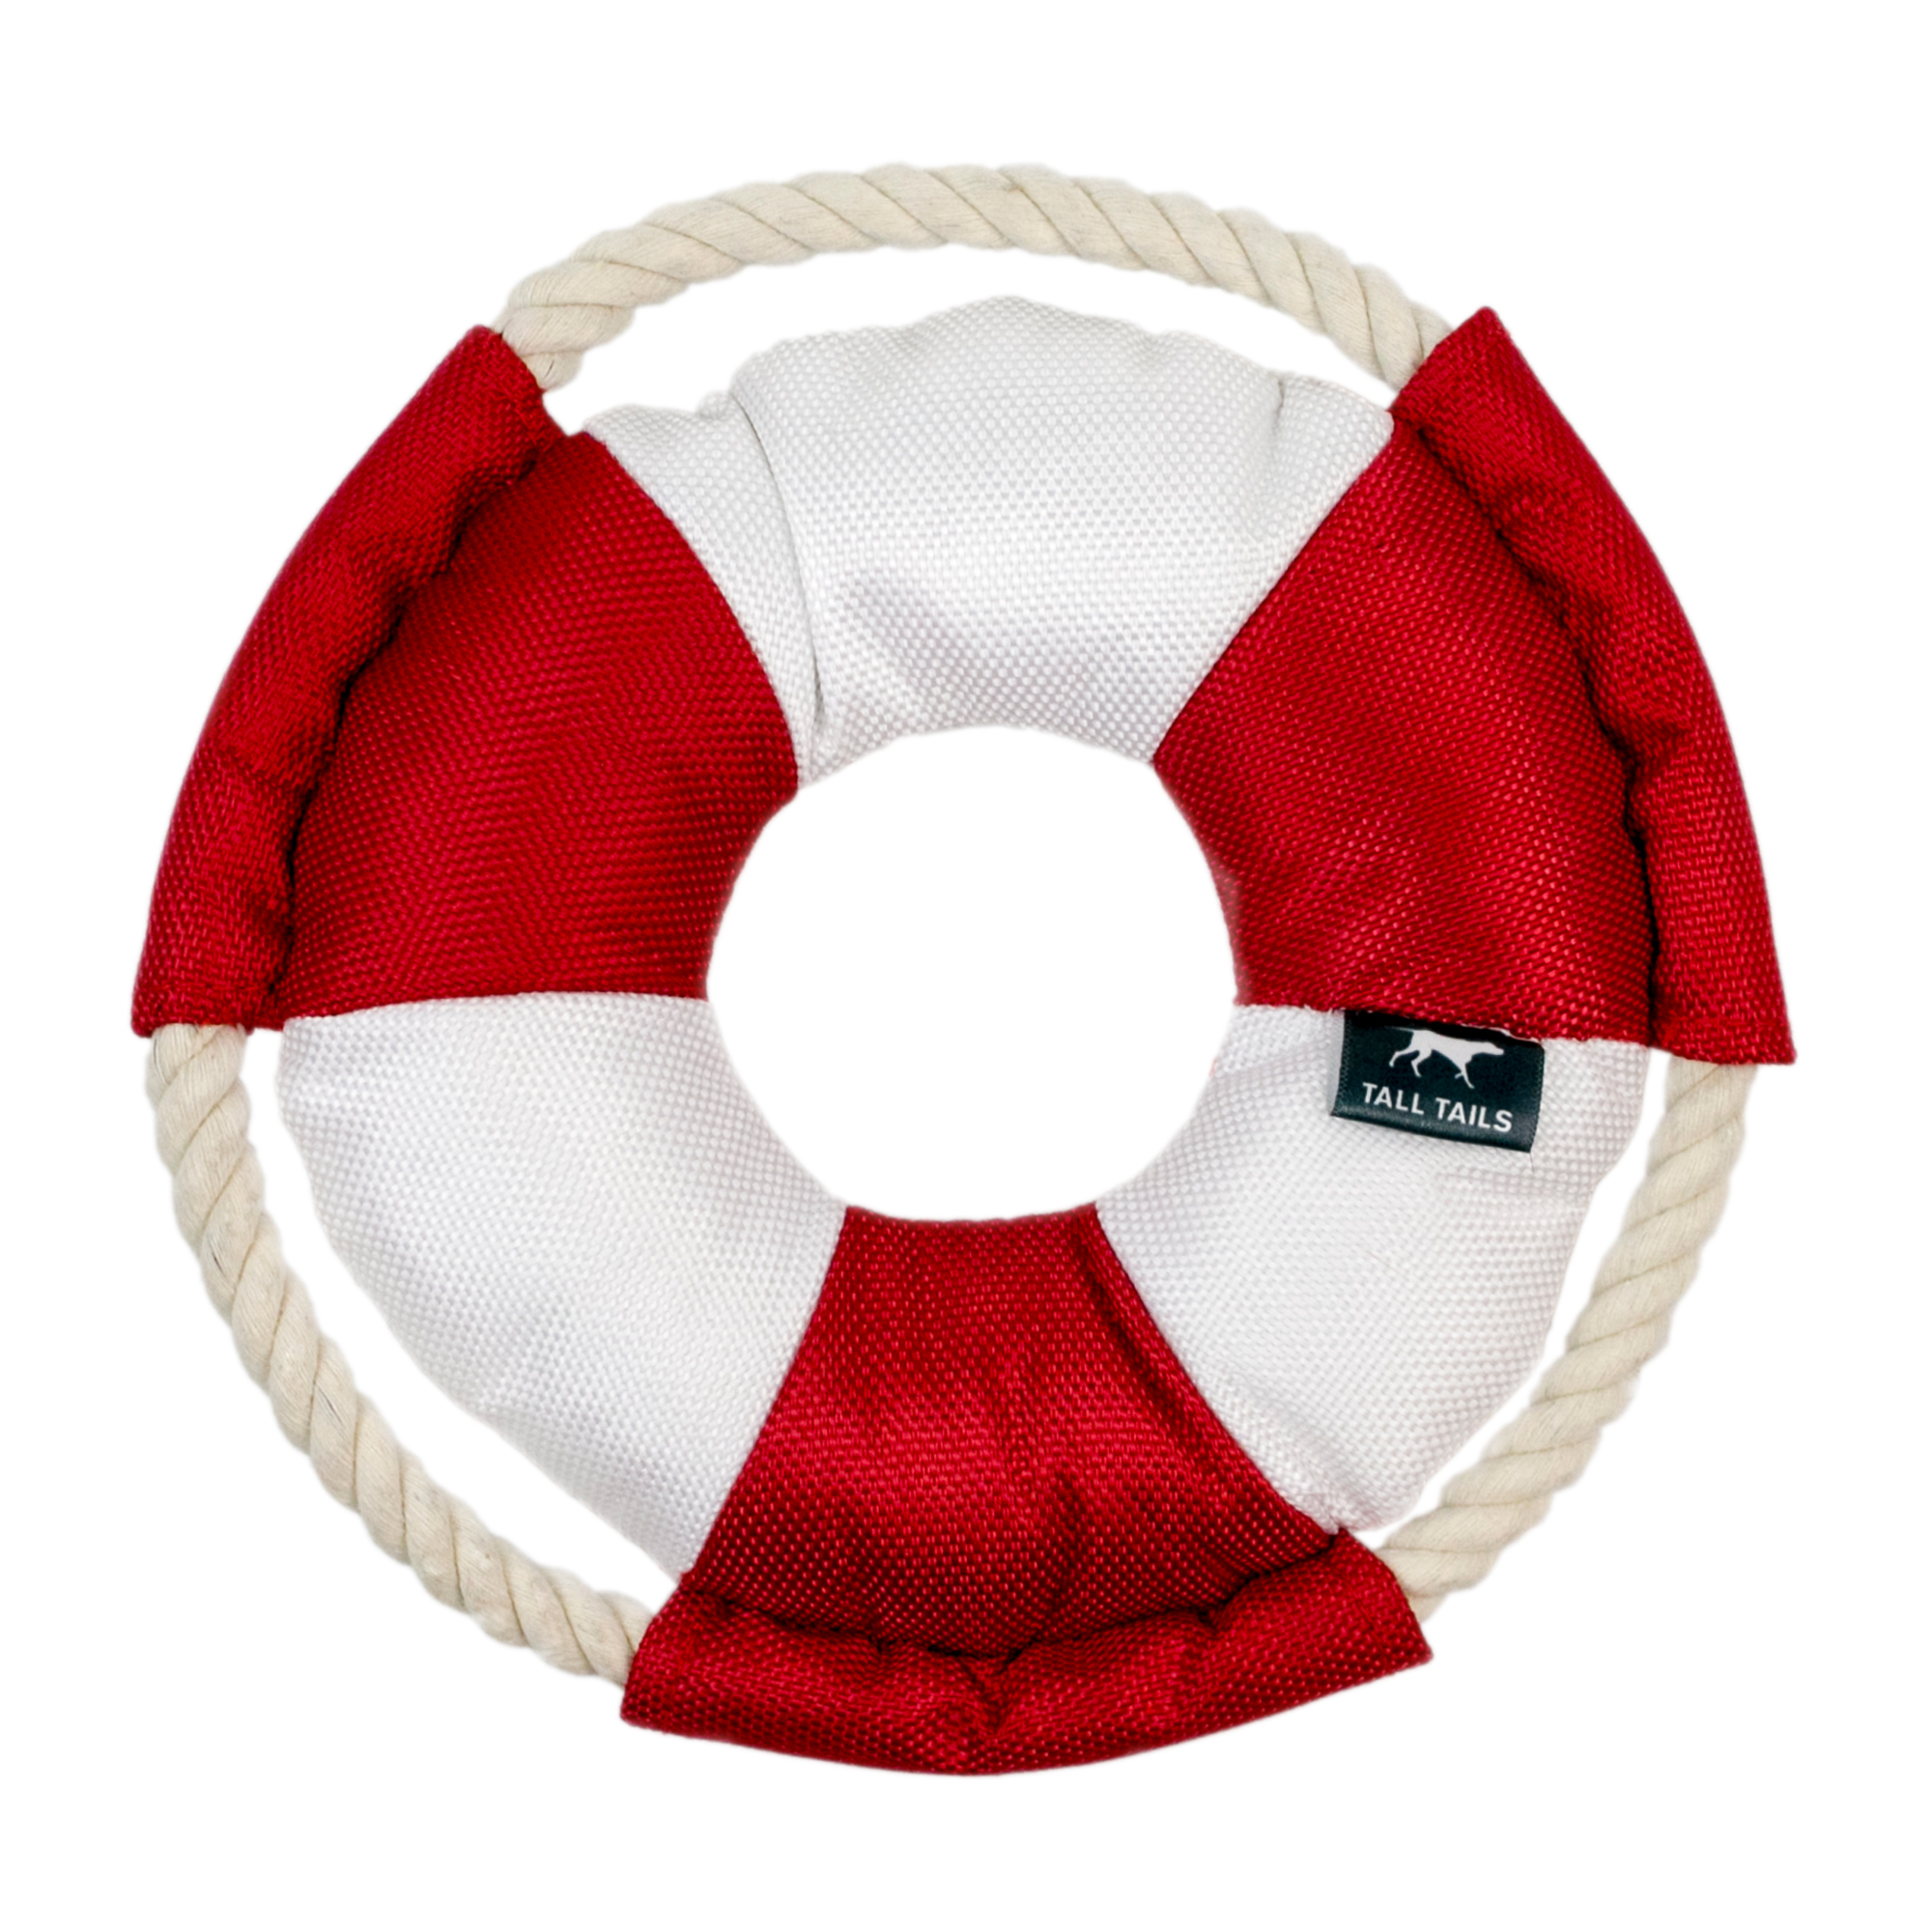 Tall Tails Lifebuoy With Squeaker Dog Toy